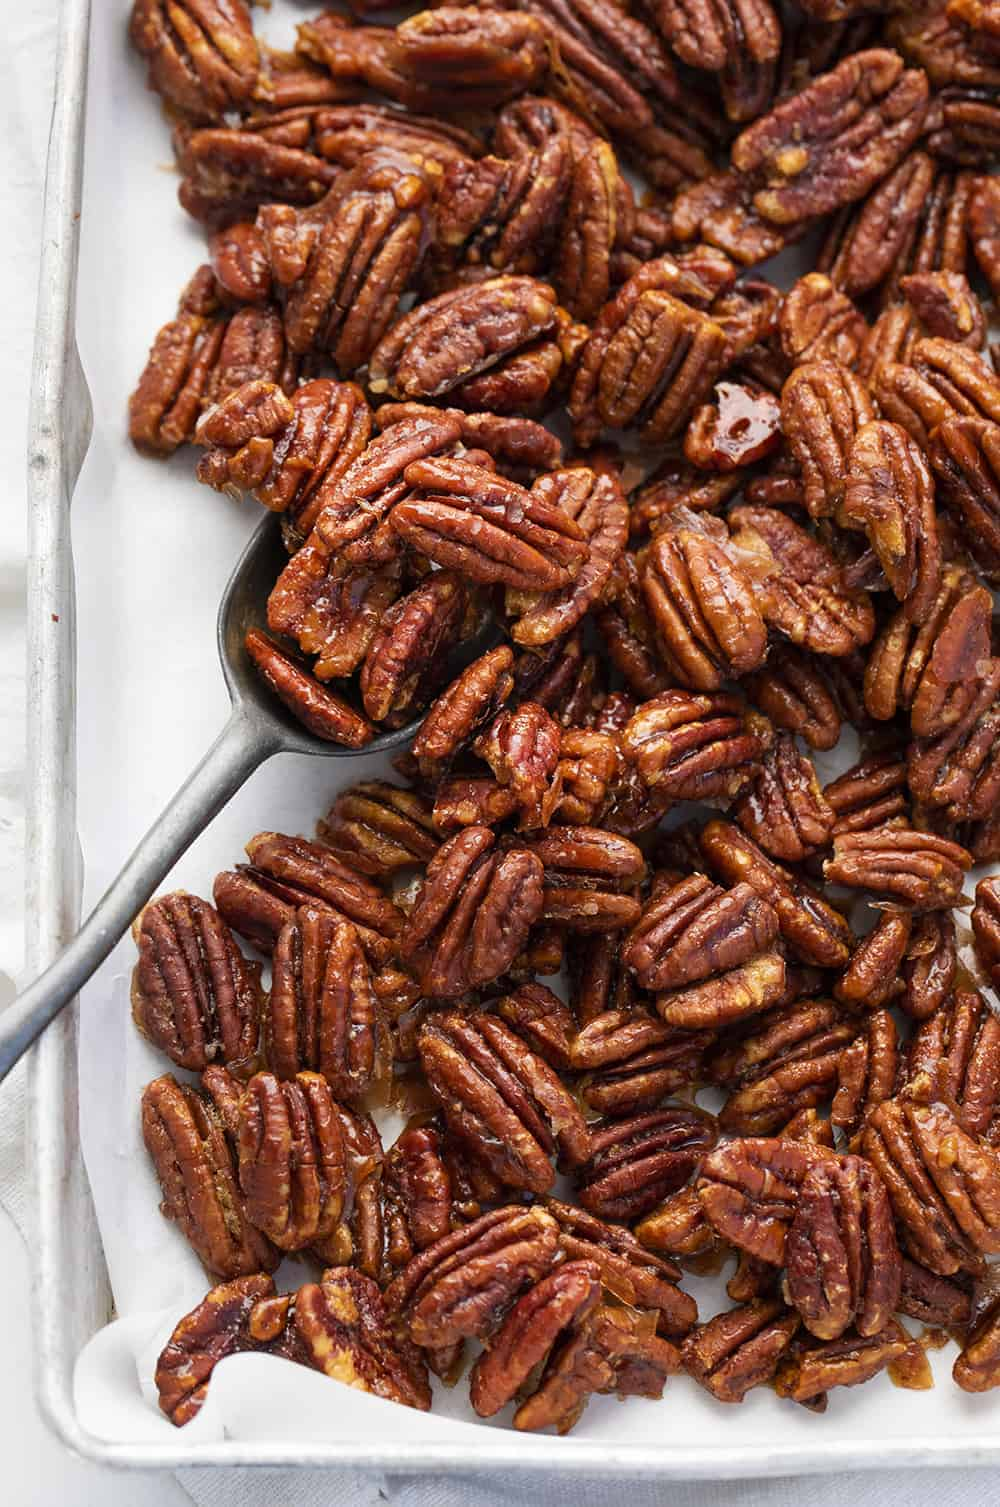 Overhead of Candied Pecans in Pan with Spoon